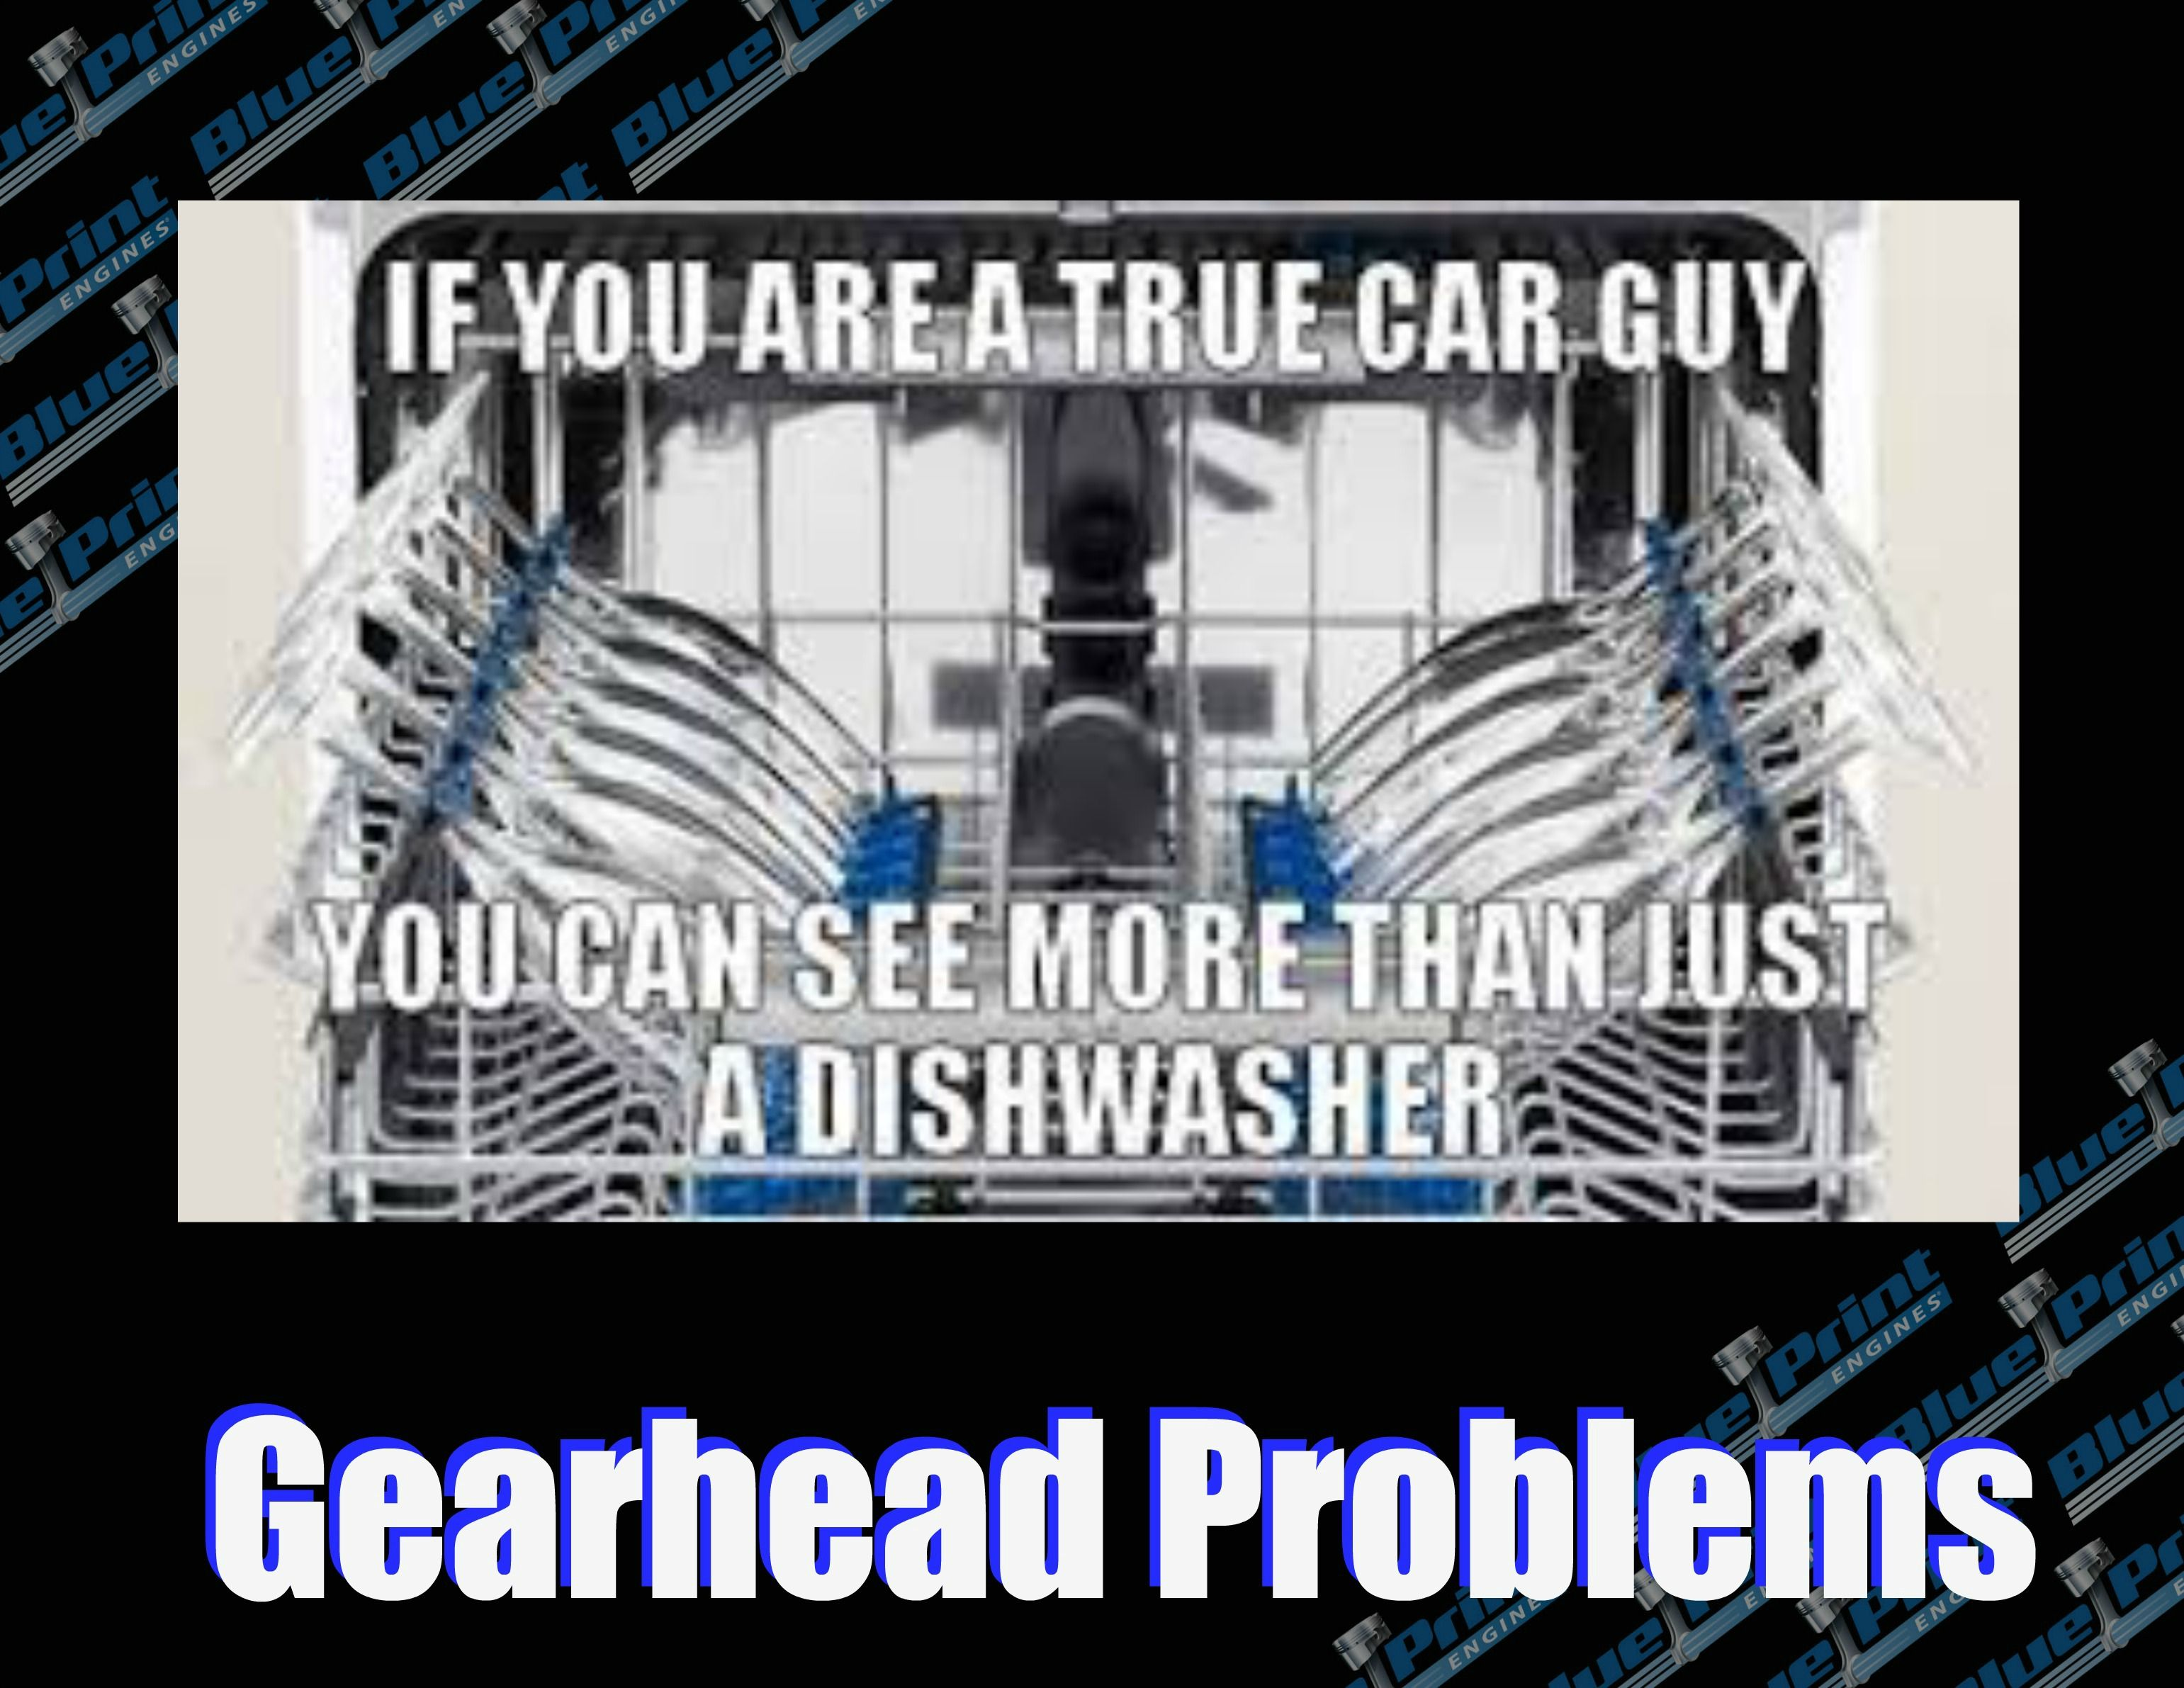 Are you a true gearhead call blueprint engines today for more call blueprint engines today for more information about any of malvernweather Images